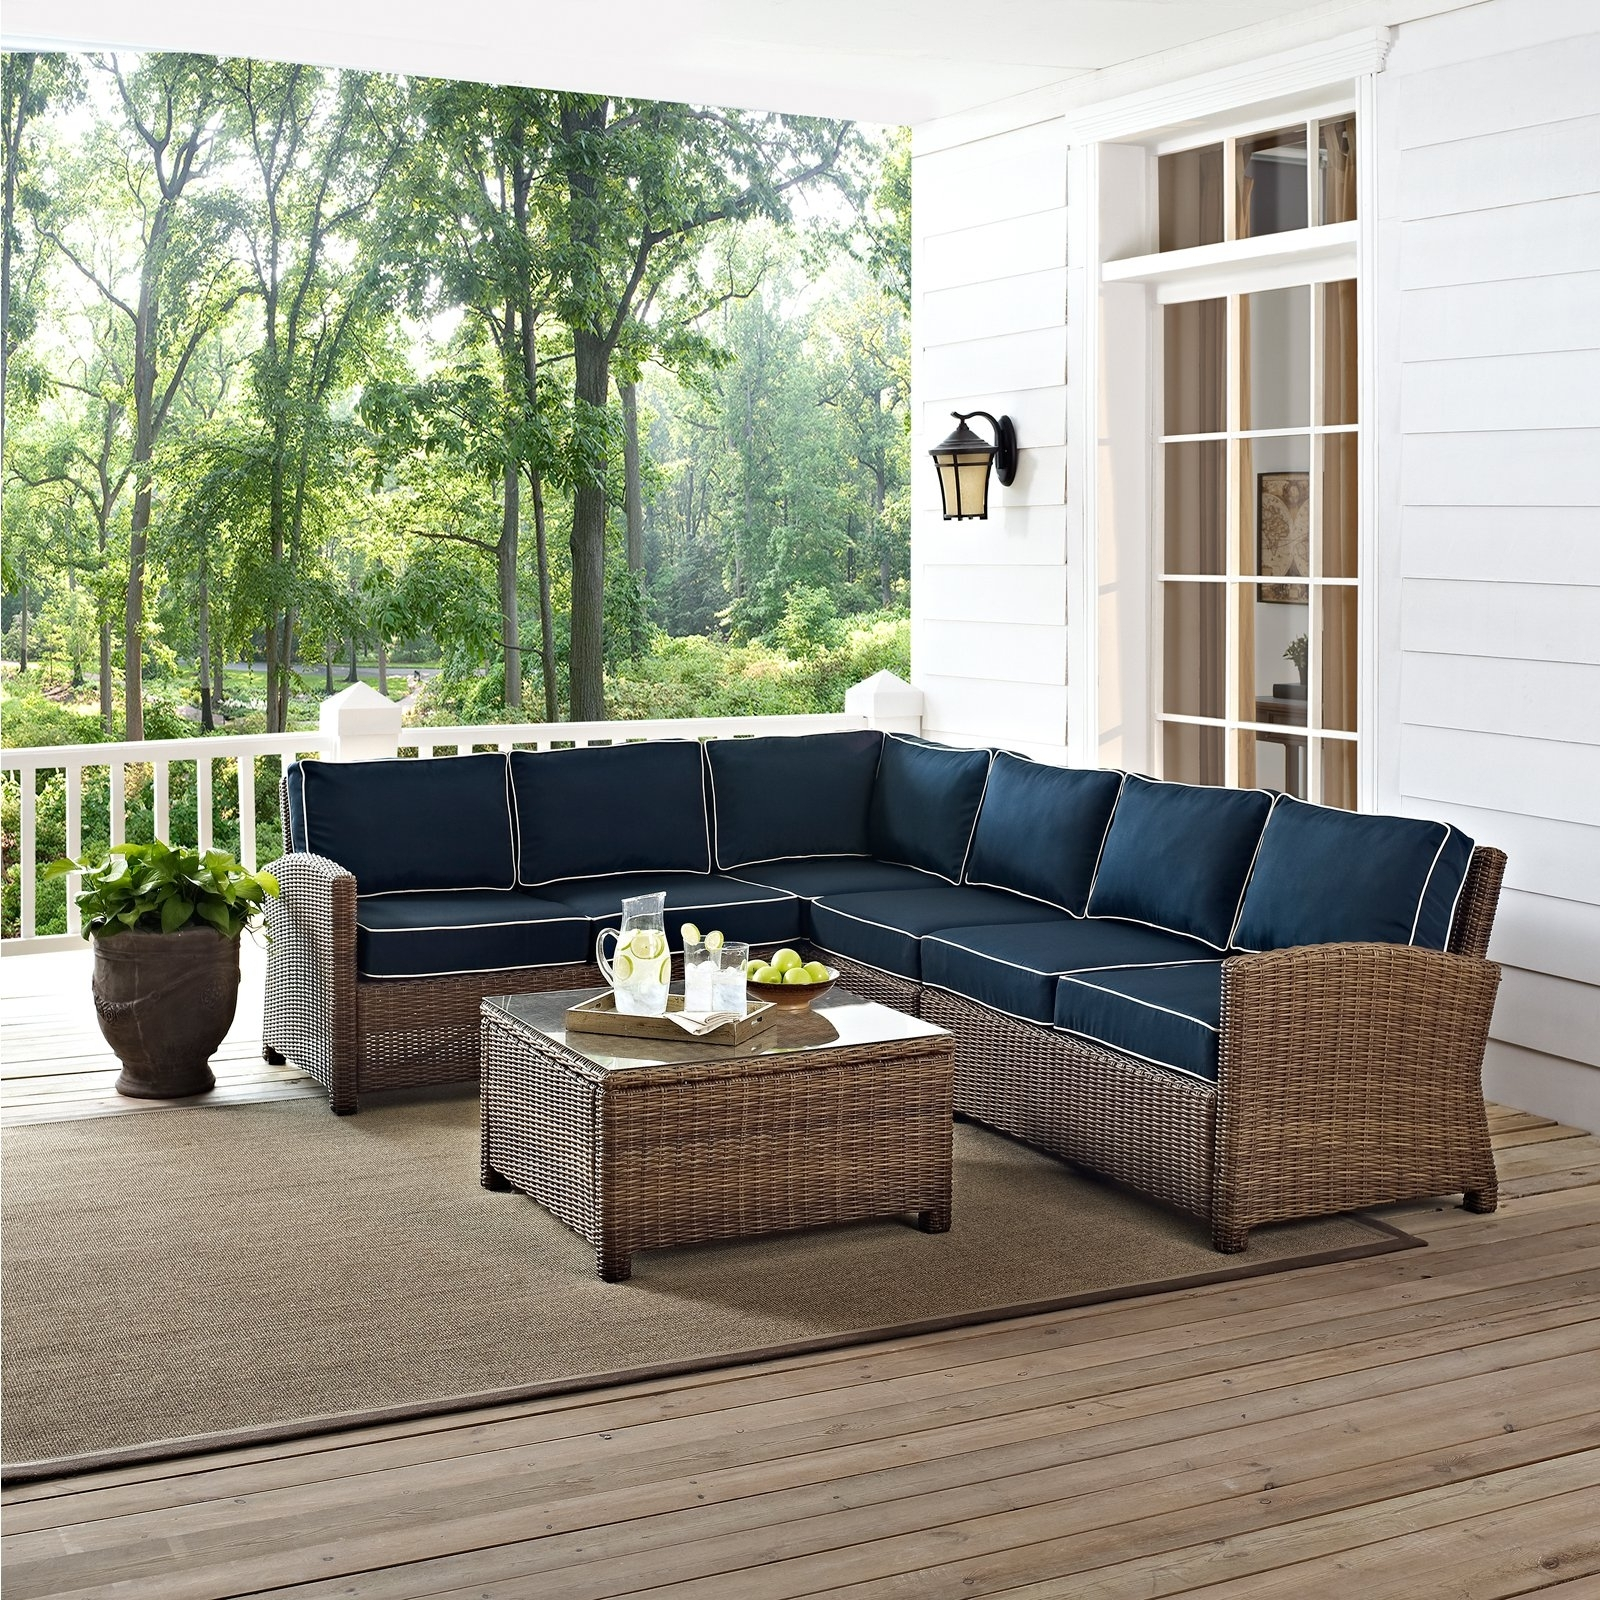 Patio Conversation Sets With Blue Cushions Inside Trendy Crosley Bradenton 5 Piece Outdoor Wicker Sectional Conversation Set (View 12 of 20)